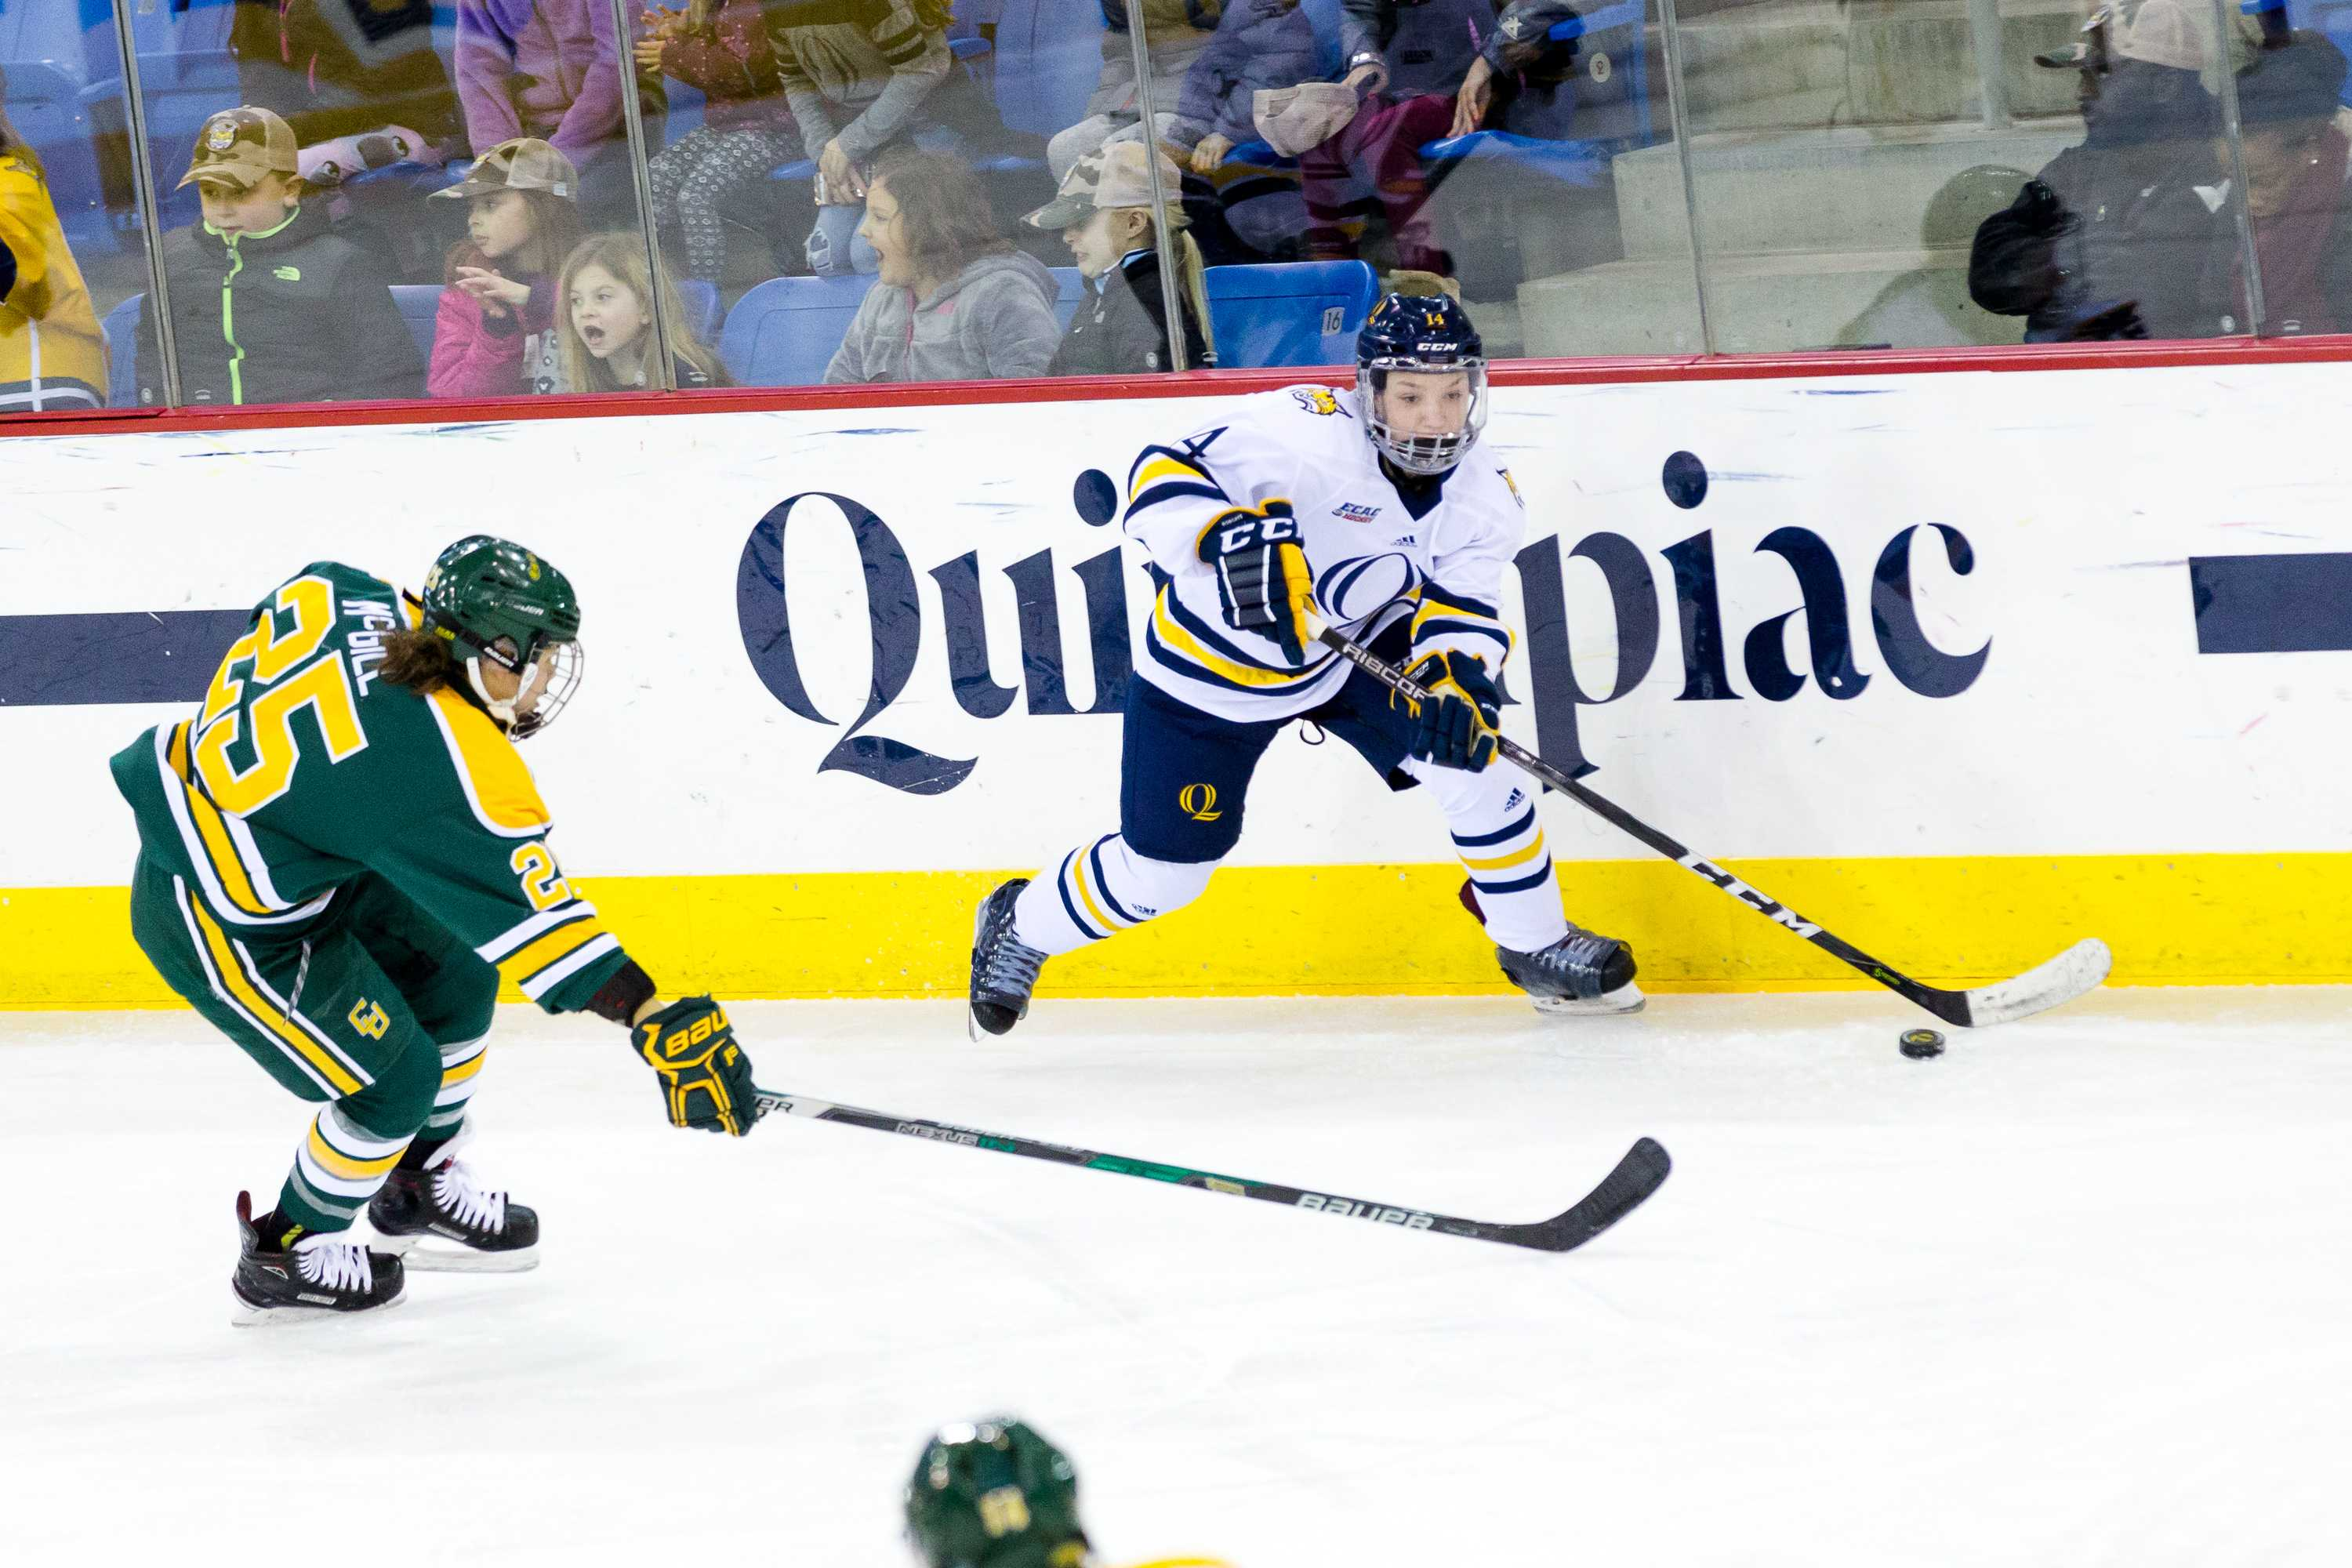 Quinnipiac women's ice hockey loses to No. 1 Clarkson at home, 2-0